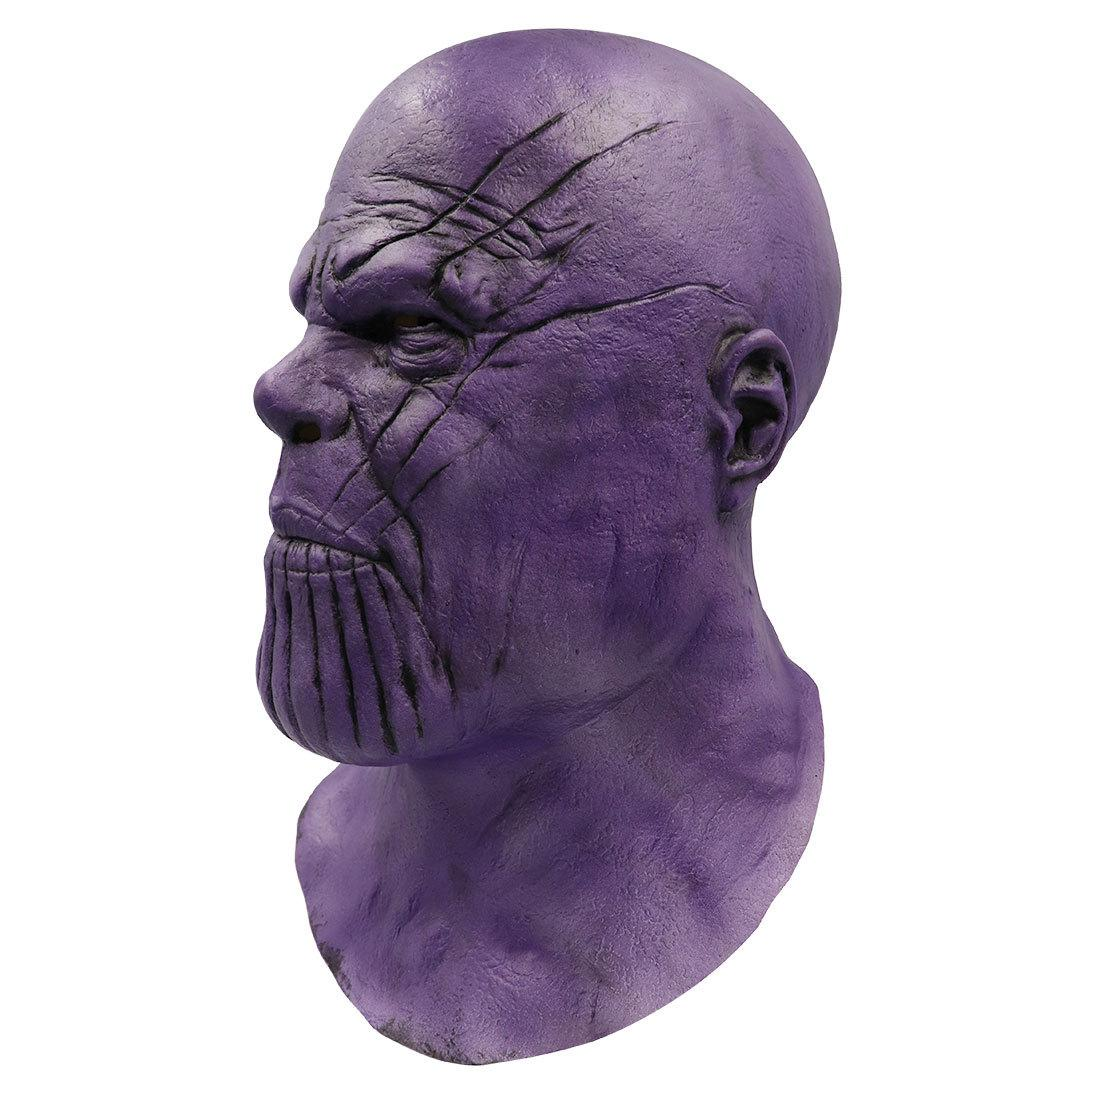 [New] Cosplay Avengers Marvel Heroes Thanos mask latex Action Figure Toy model costume party Adult child best gift toys